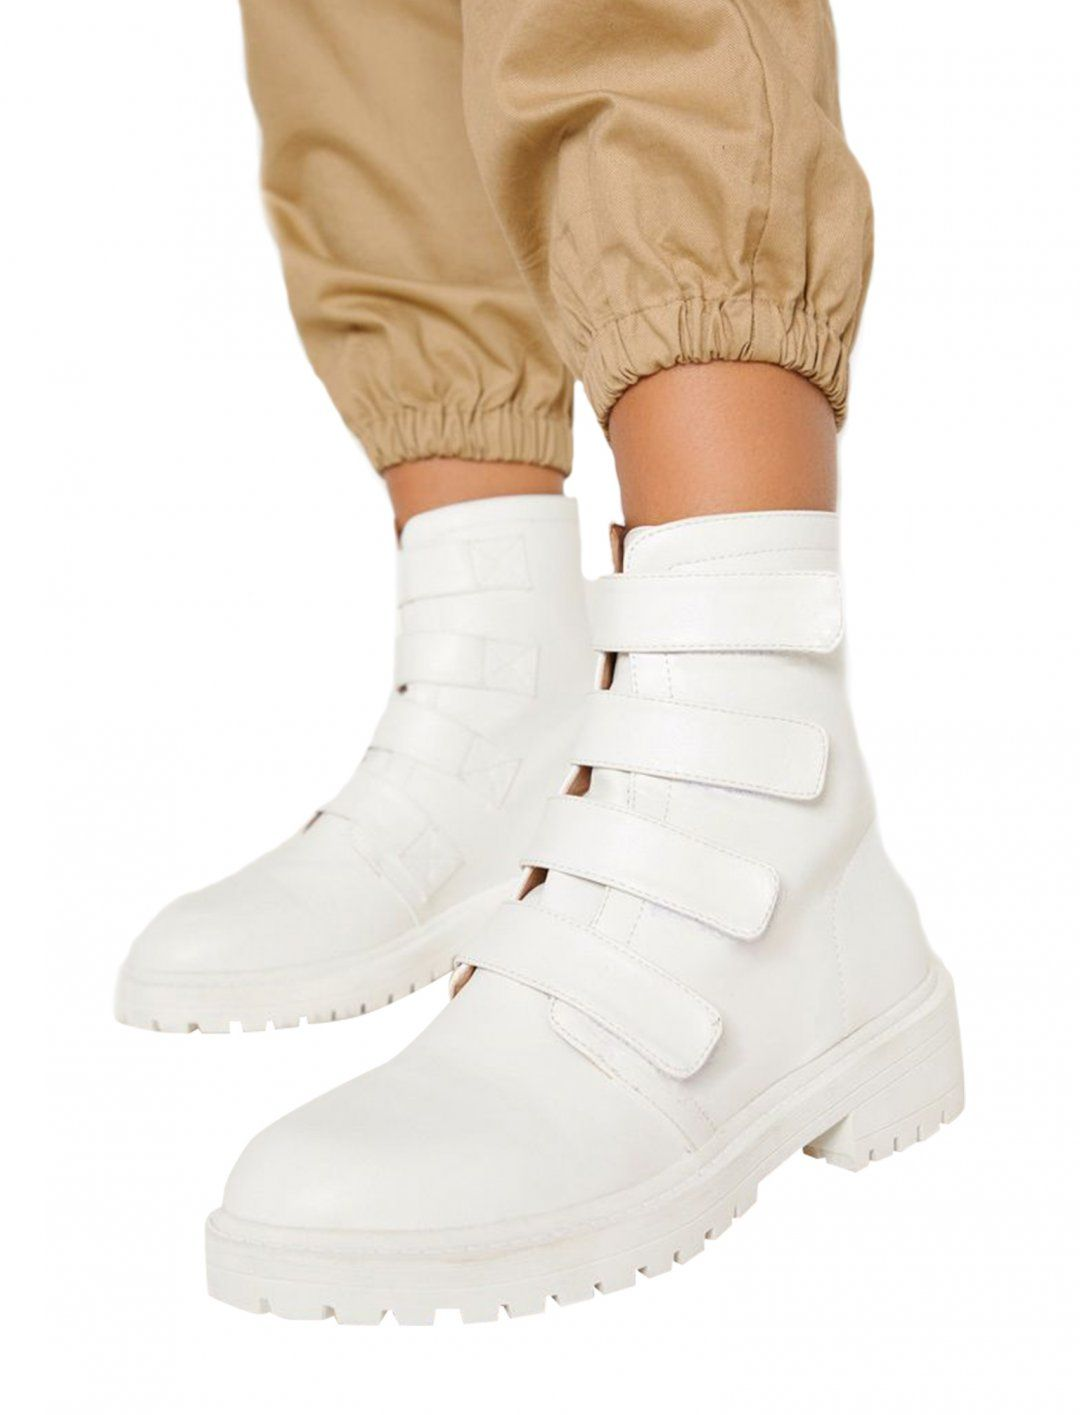 Yasmin Boots In White With Velcro Strap From Pretty Little Thing Blind Music Video Boots White Combat Boots Shoes Fashion Photography